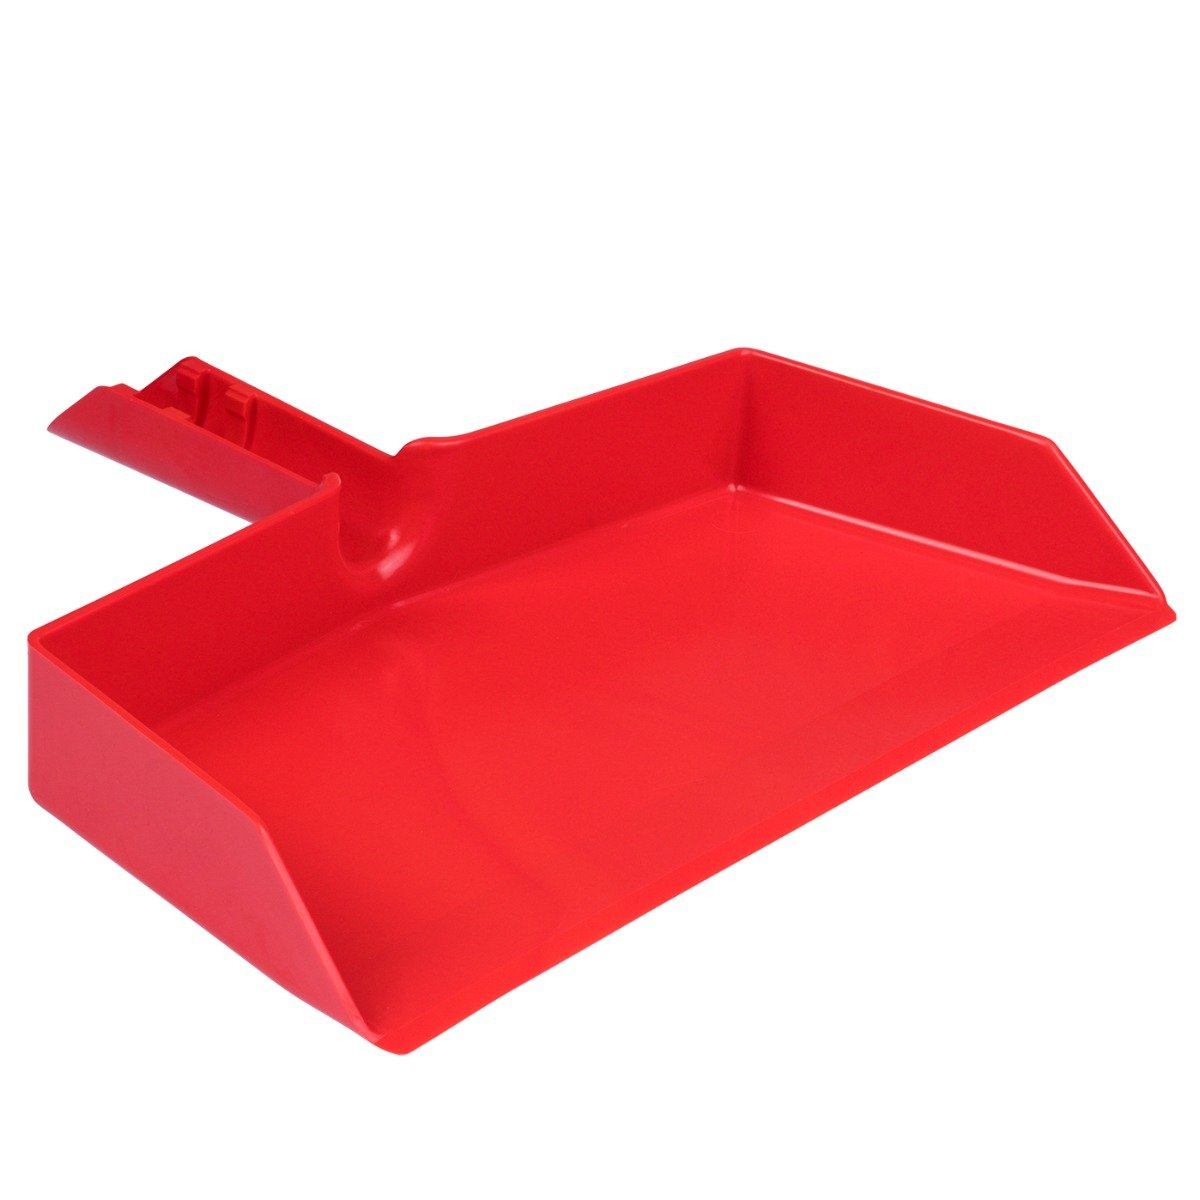 Fiesta Red Plastic Dustpan, Wide Sweep, Handheld Easy Grip Handle w/ Clip-on-Dustpans-Fuller Brush Company